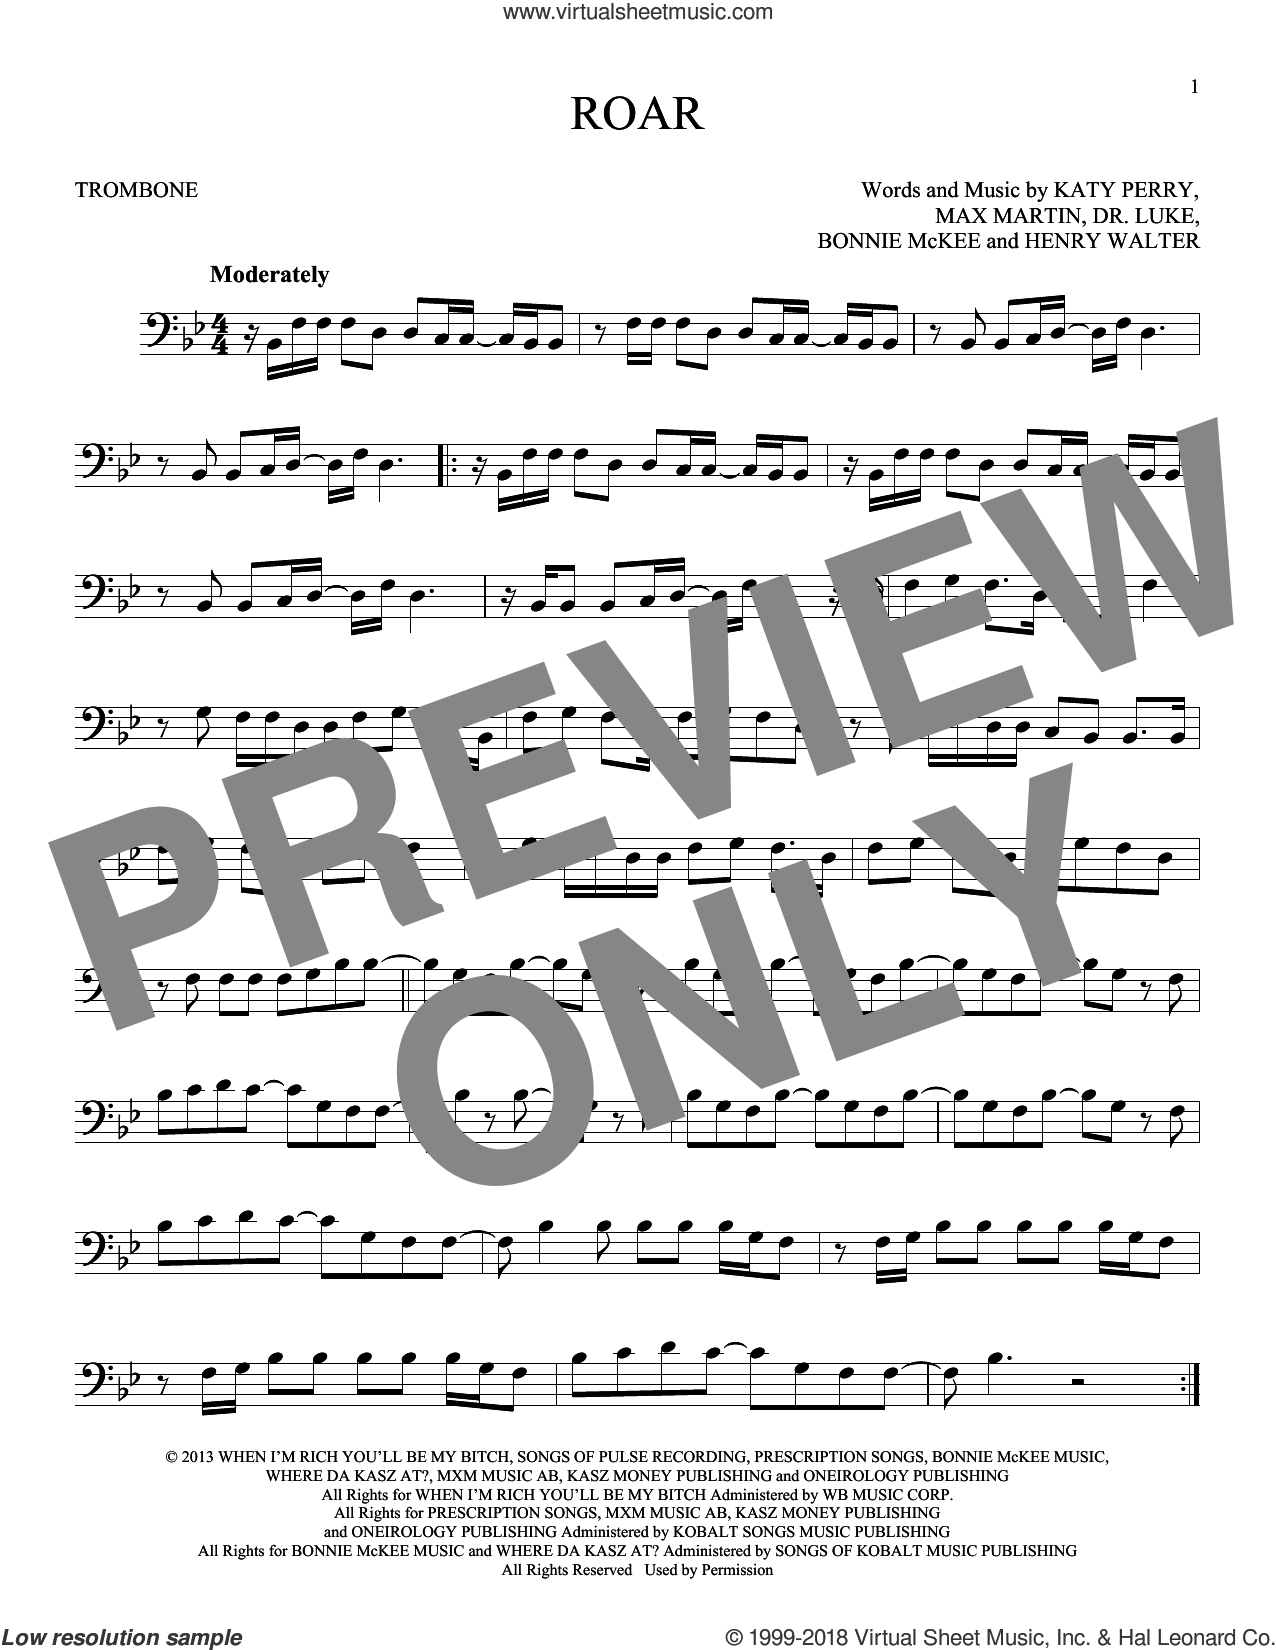 Roar sheet music for trombone solo by Max Martin, Bonnie McKee, Henry Walter, Katy Perry and Lukasz Gottwald. Score Image Preview.